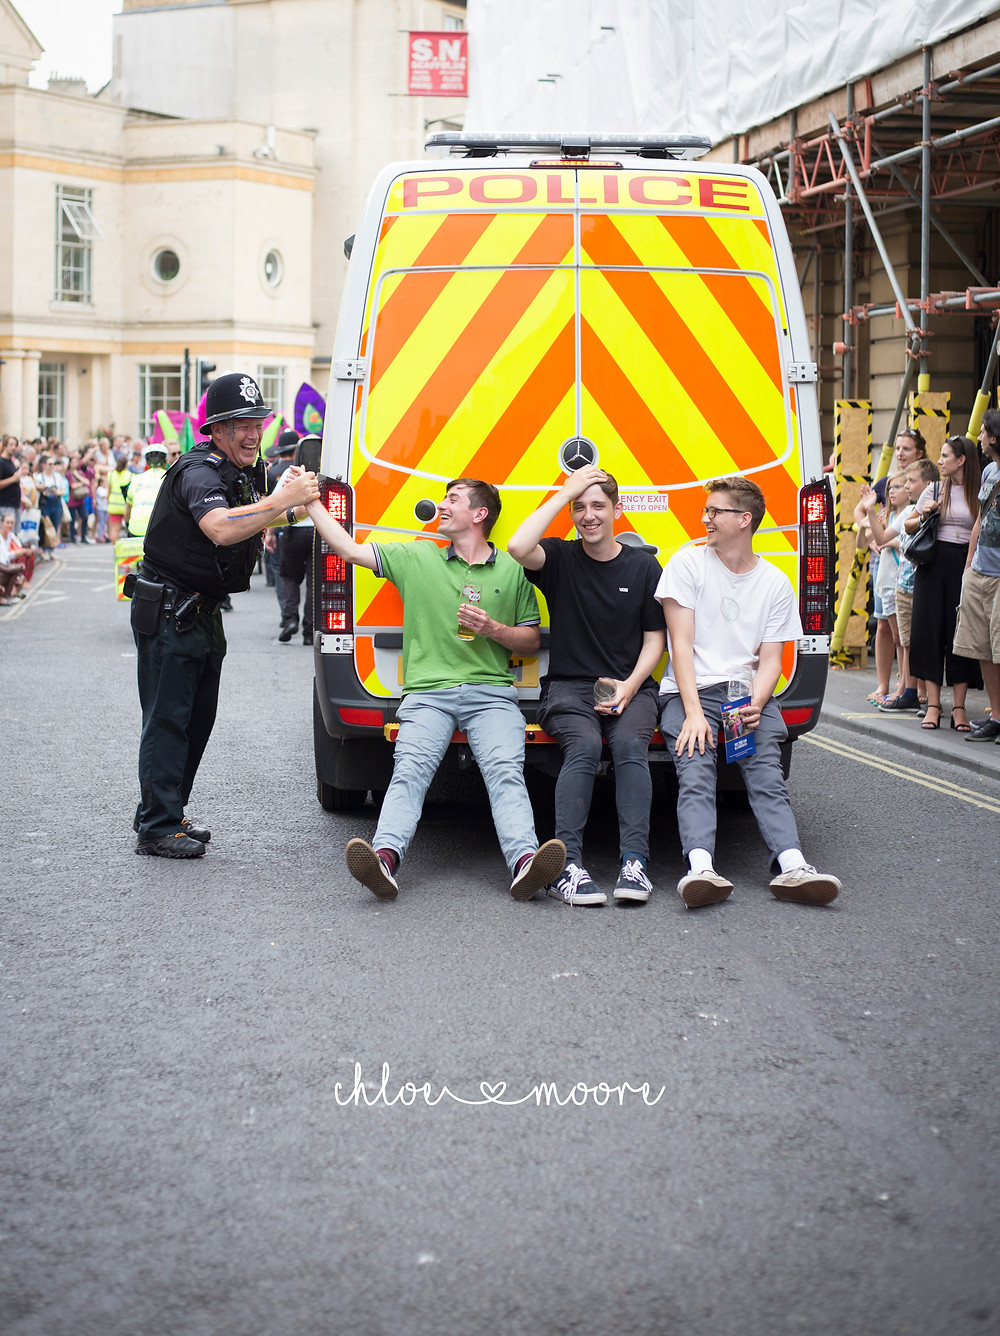 Bath Carnival 2018, pride, LGBT+ rainbow flag, Festival. Super Pirates, police